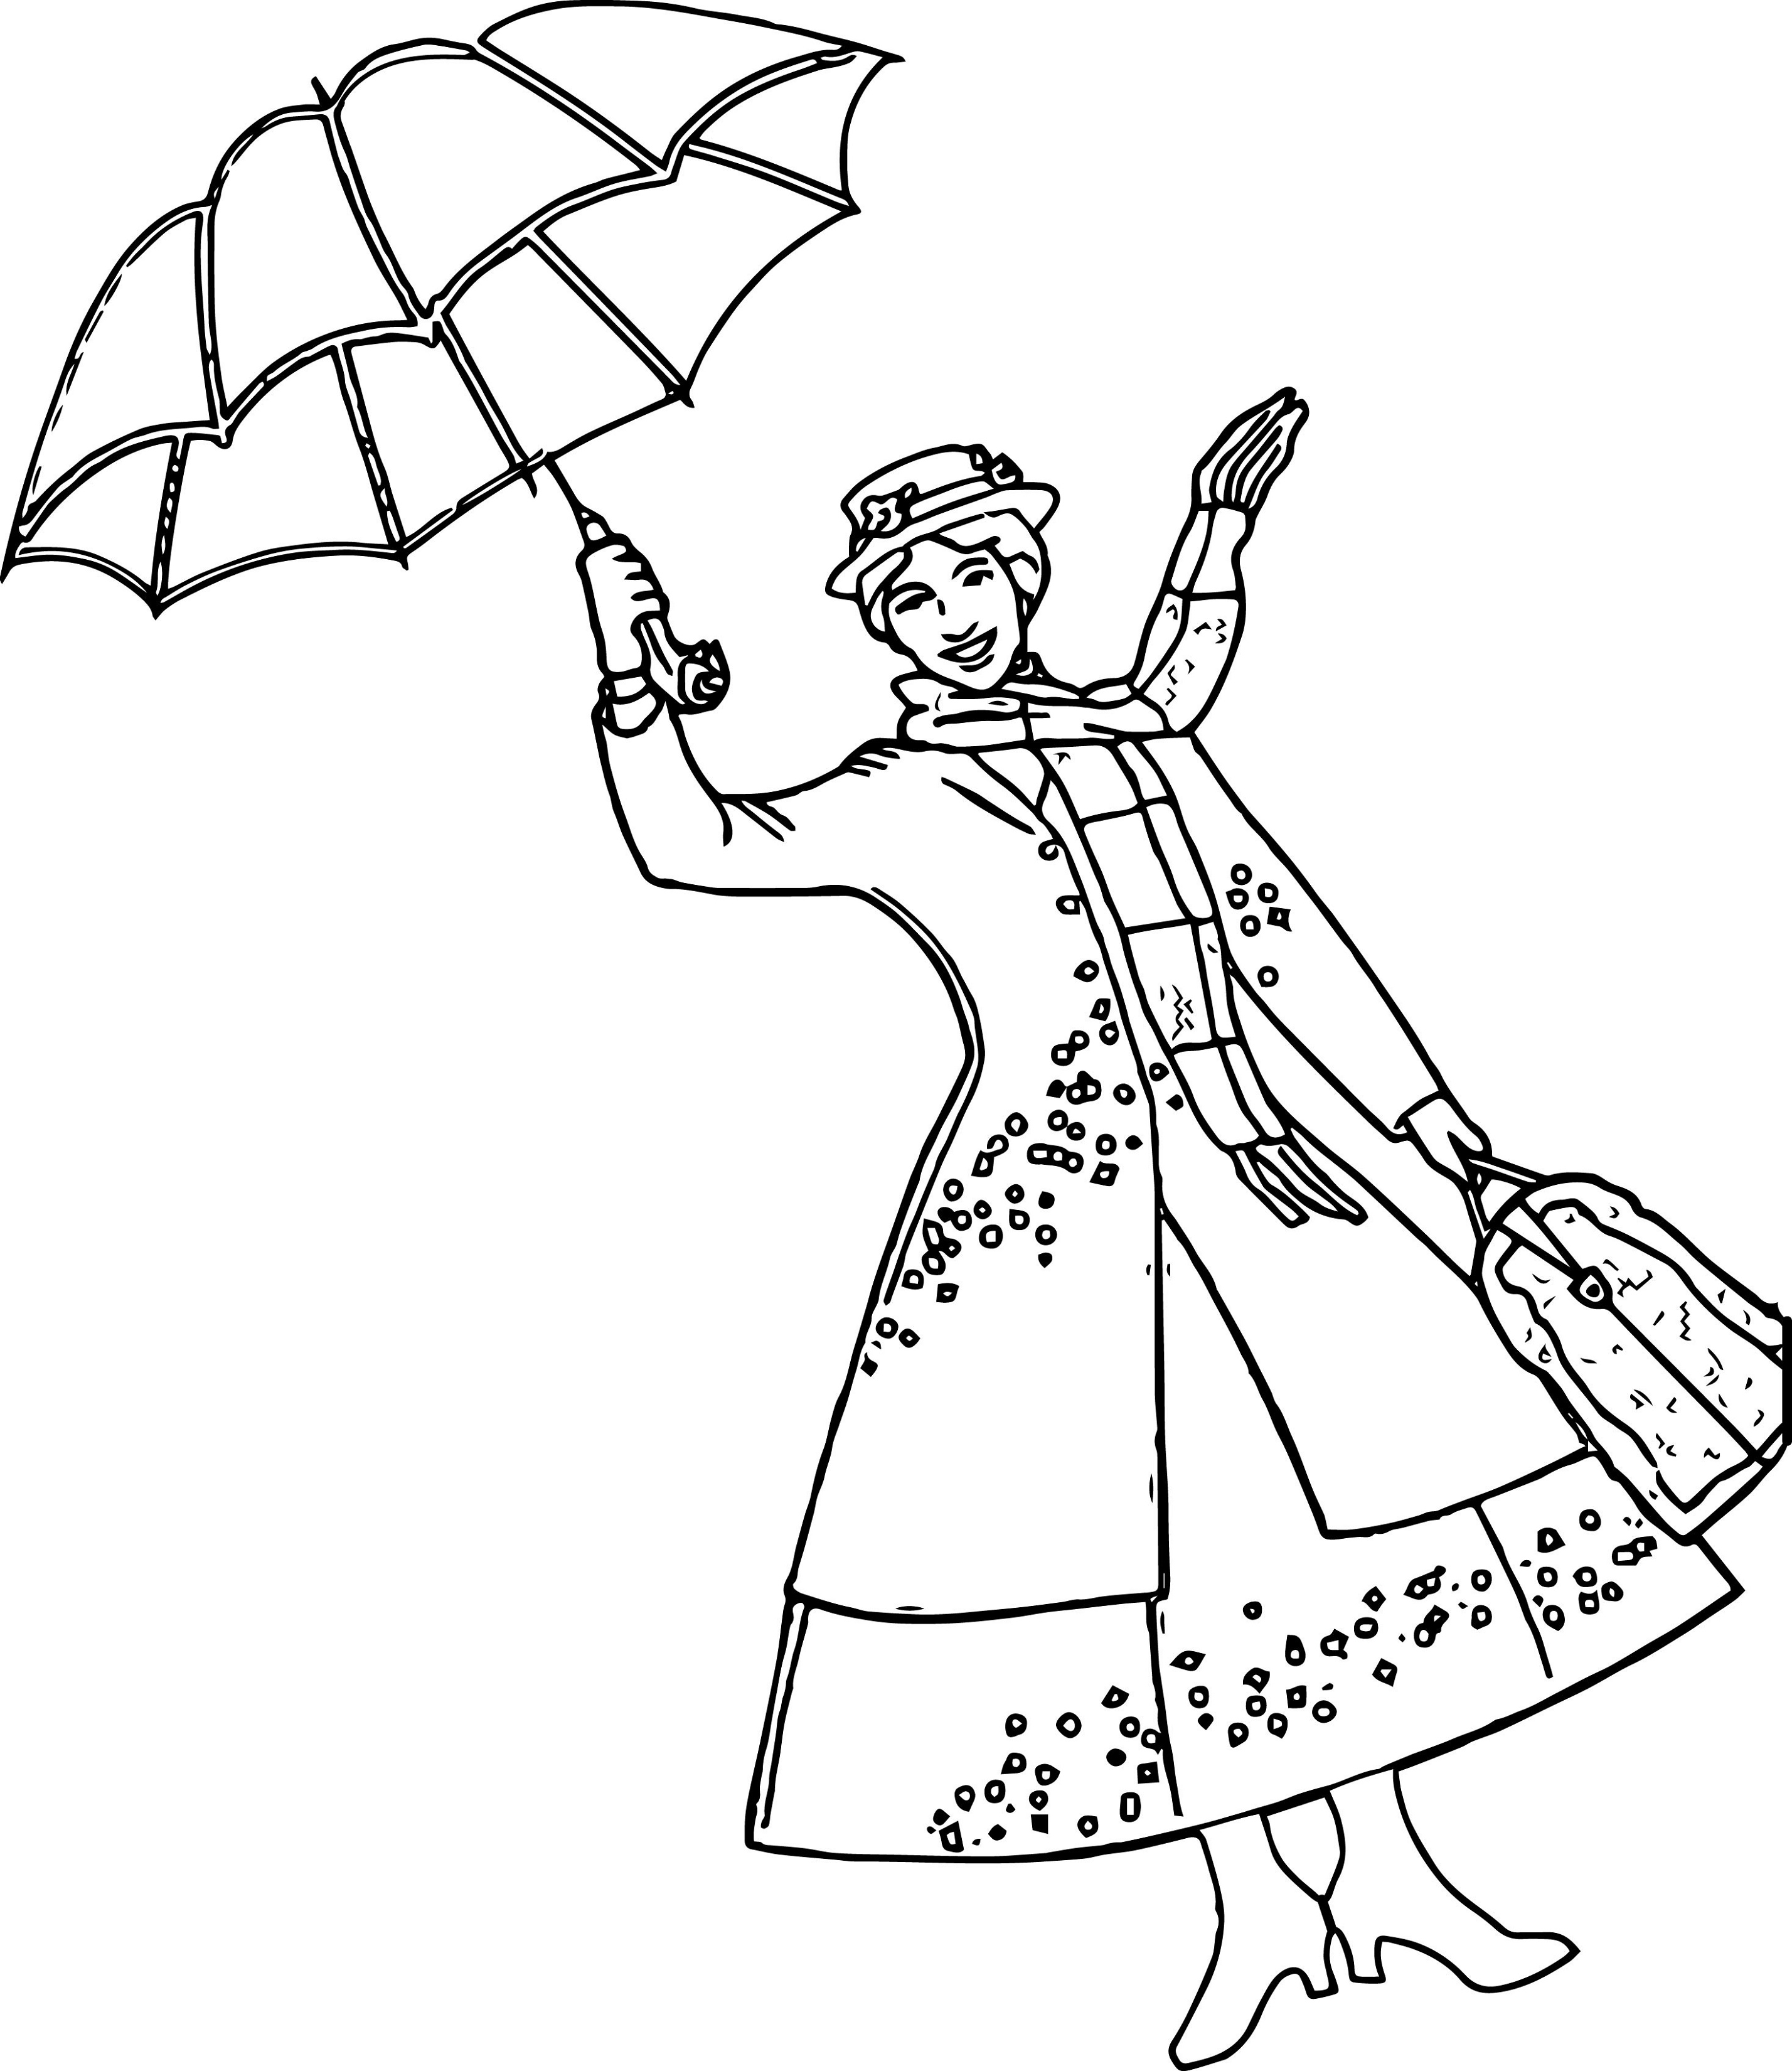 Mary-Poppins-Coloring-Pages-Free.